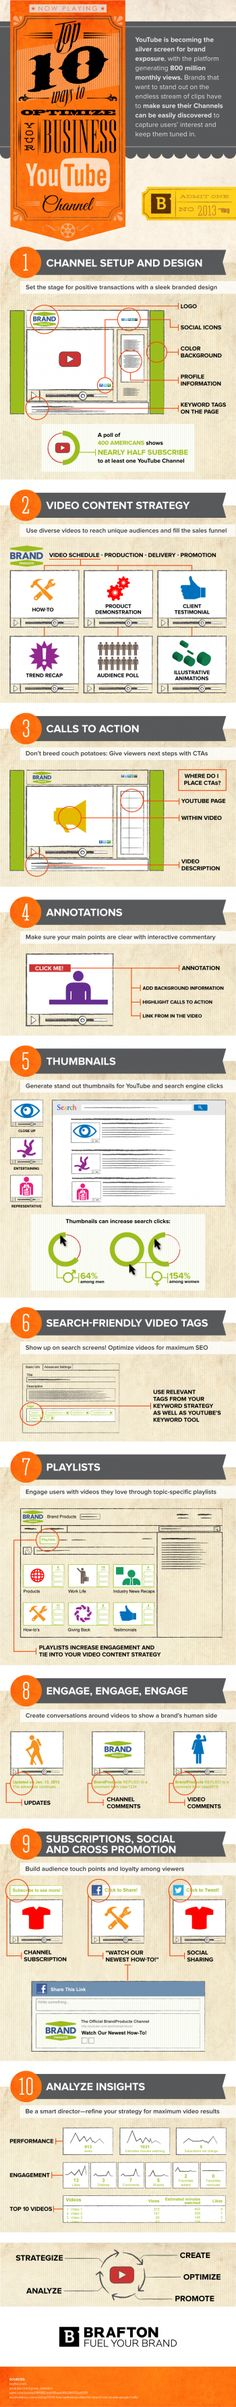 """""""Top 10 Ways to Optimize Your Brand's #YouTube Channel"""" #INFOGRAPHIC #Entrepreneur"""